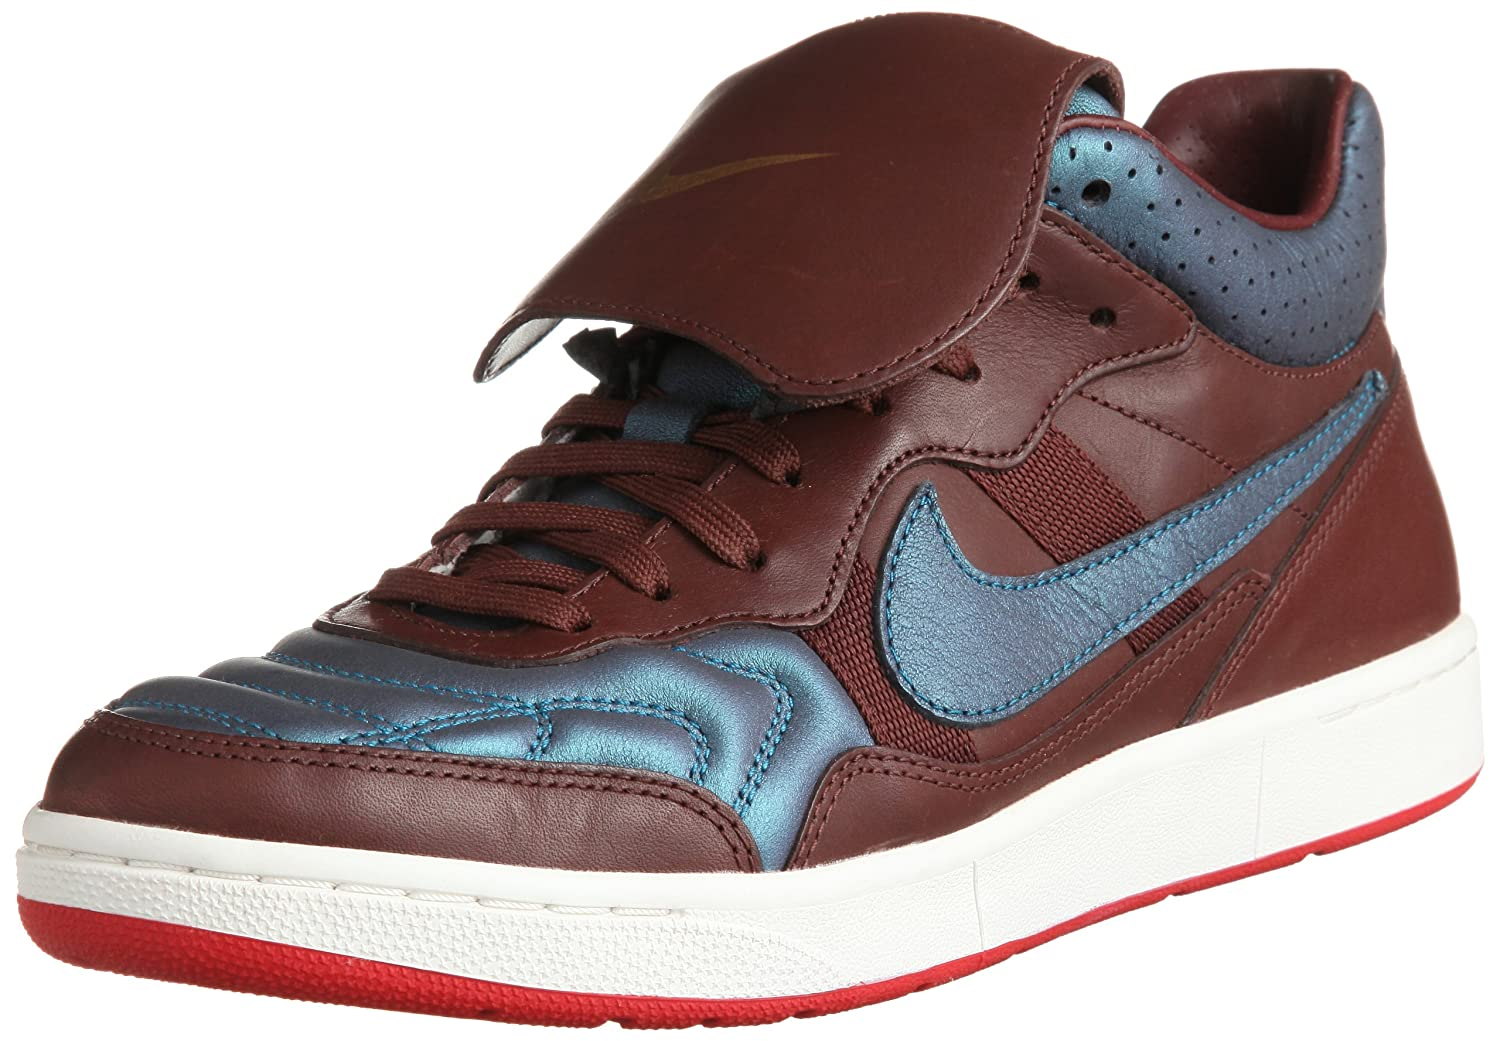 NIKE NSW Tiempo '94 Mid QS Mens Soccer Shoes